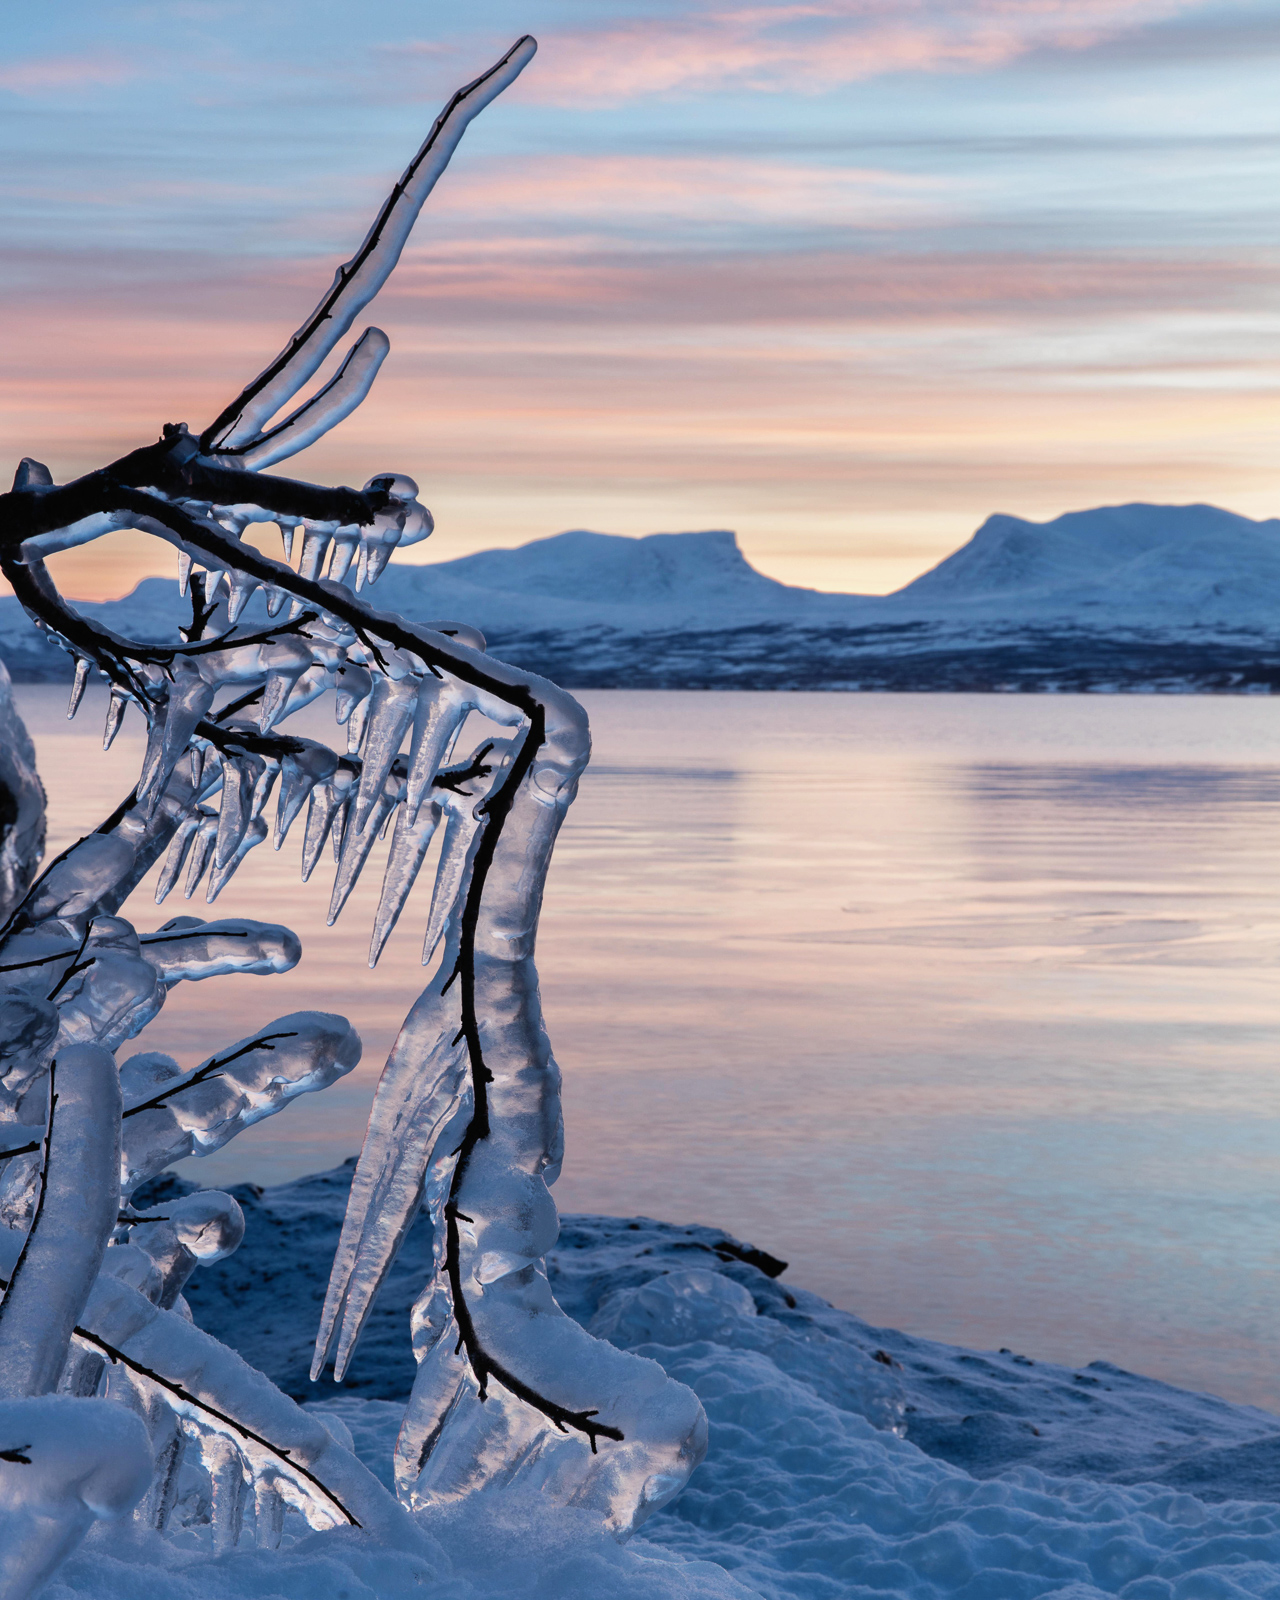 Lapporten the Gate to Lapland in . Canon 5DS Canon 24-70mm f/2.8 L II at 55mm, ISO 100, 0.4s at f/16 December 2015 © Oliver C Wright